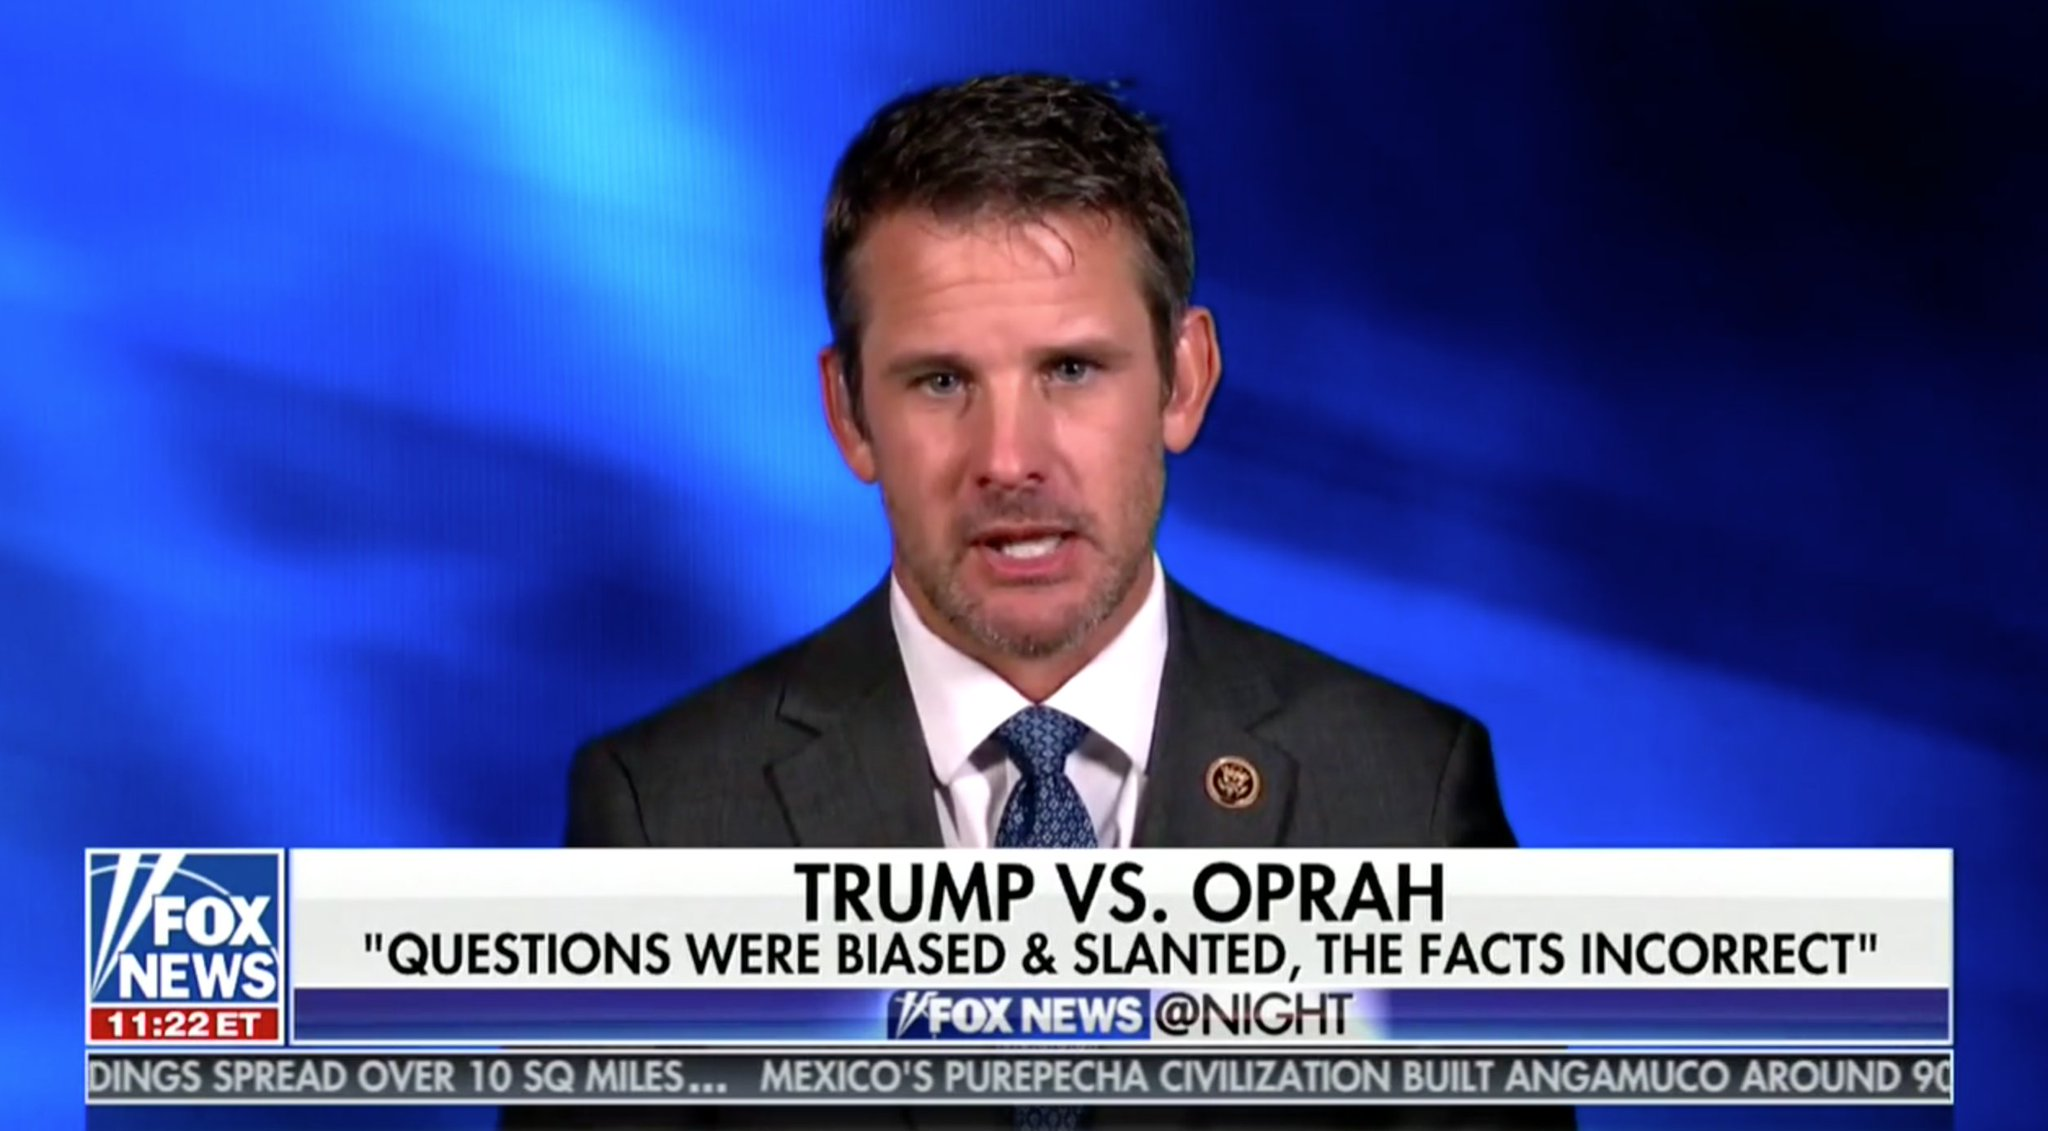 GOP Rep: Oprah Does Great Television, But 'Hasn't Shown The Qualifications' To Be President https://t.co/jAWPDb5JpT https://t.co/7GcbQv0mVh